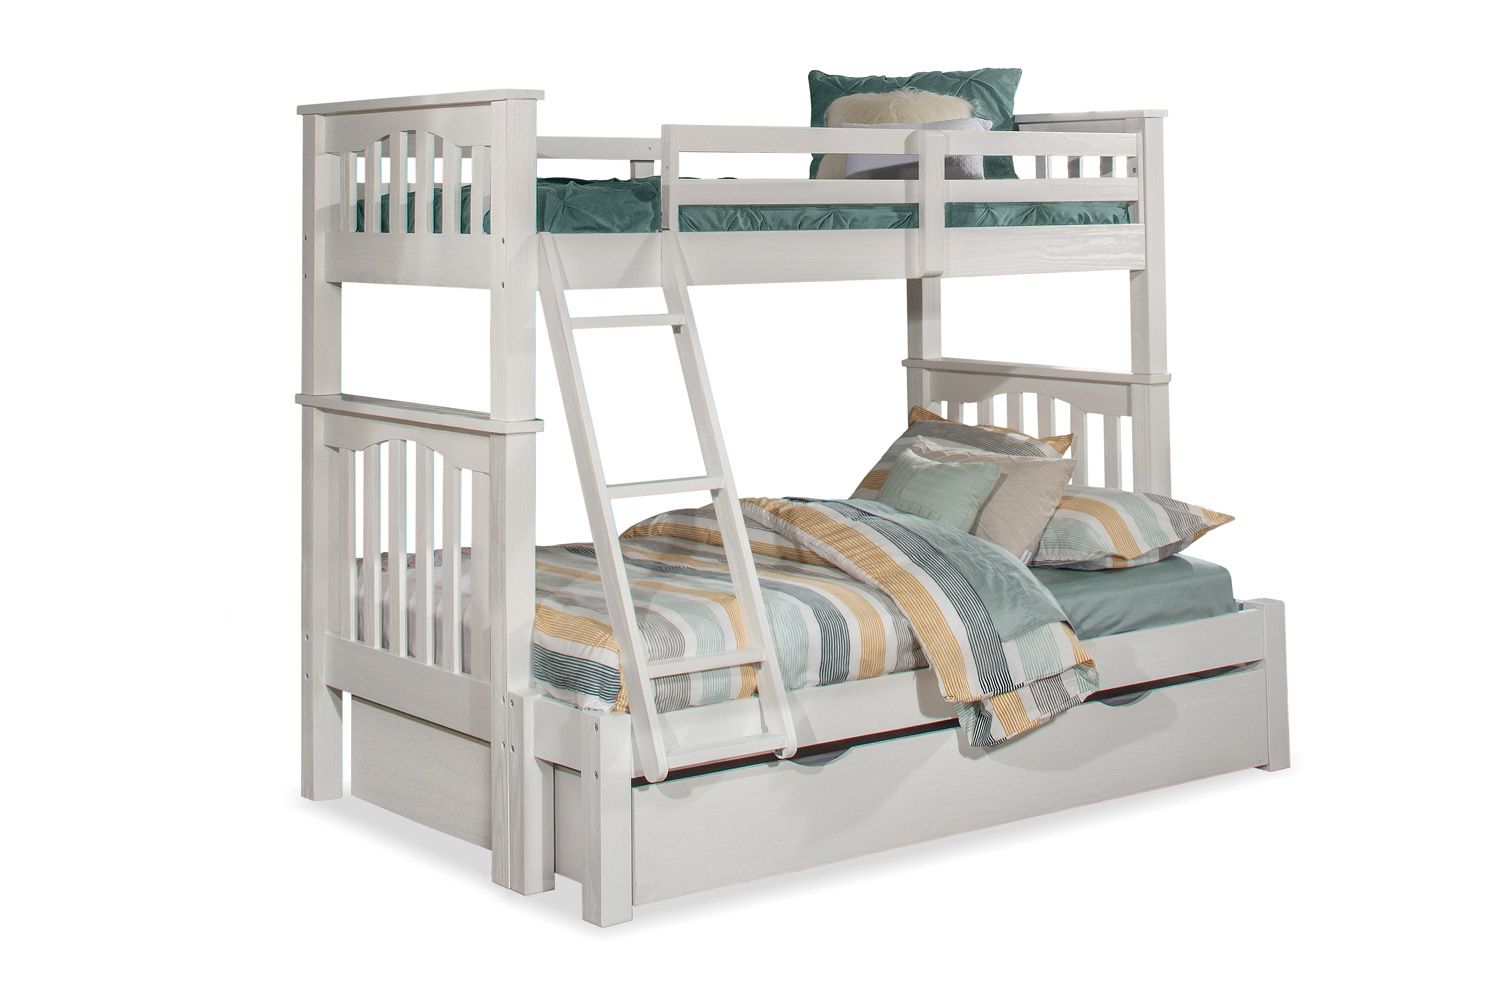 NE Kids Highlands Harper Twin/Full Bunk Bed with Trundle - White Finish